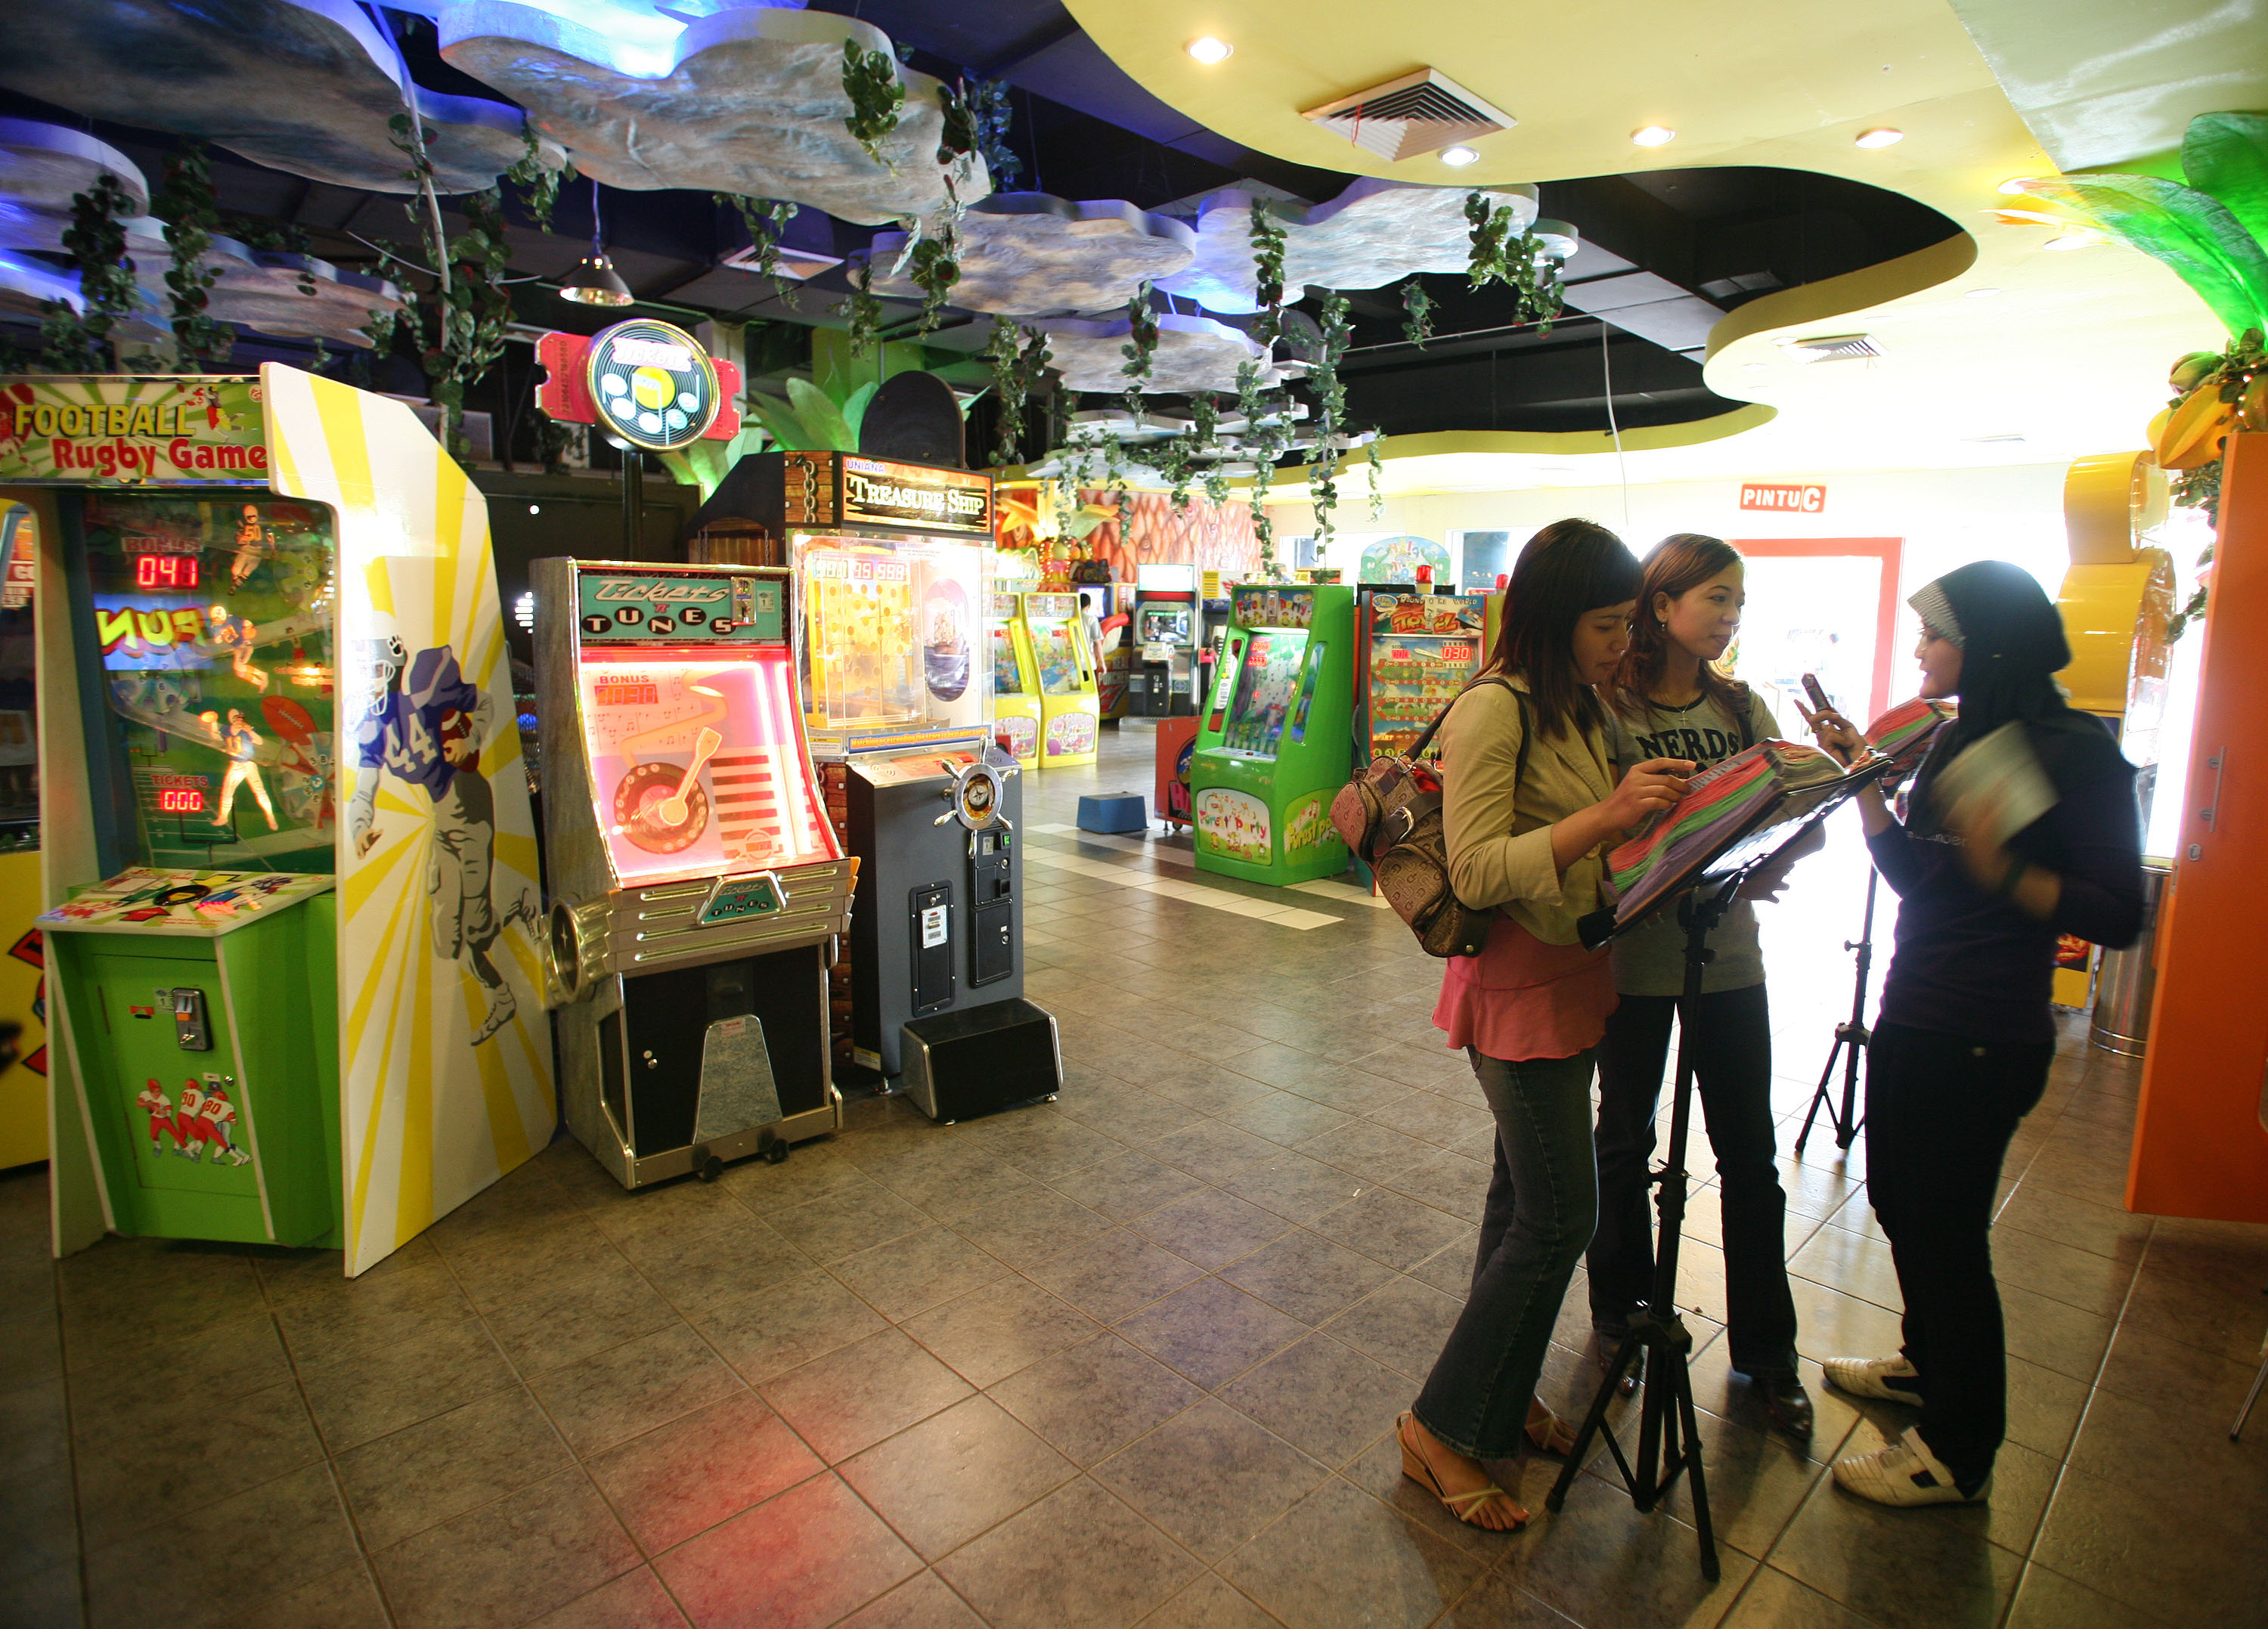 A journalist interviews two young women in an arcade.